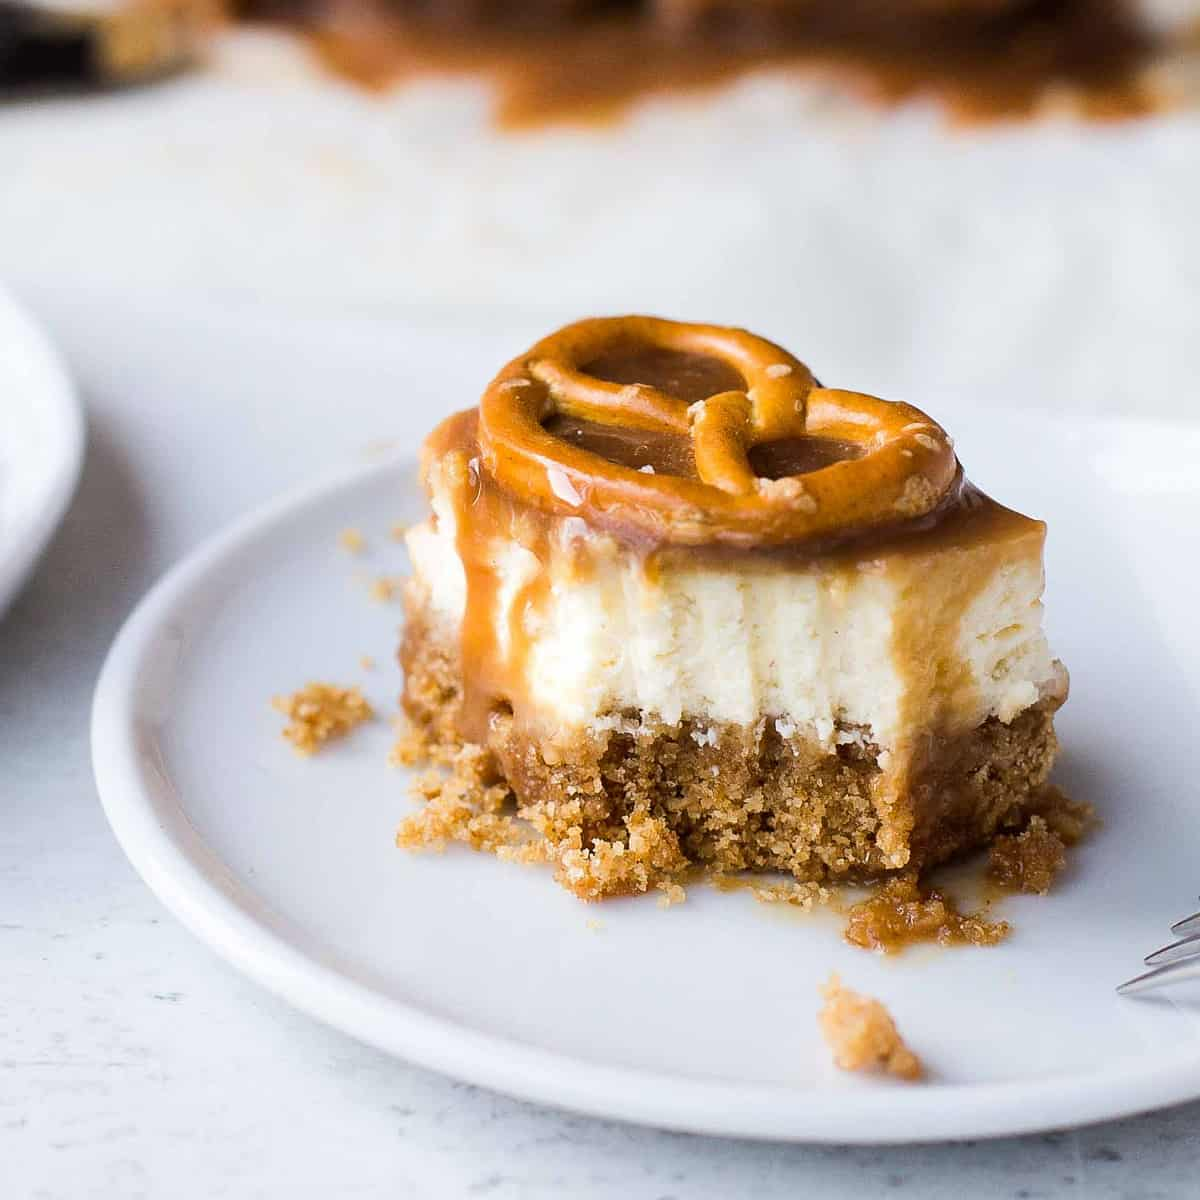 Decorative picture of cheesecake bars topped with caramel and pretzels